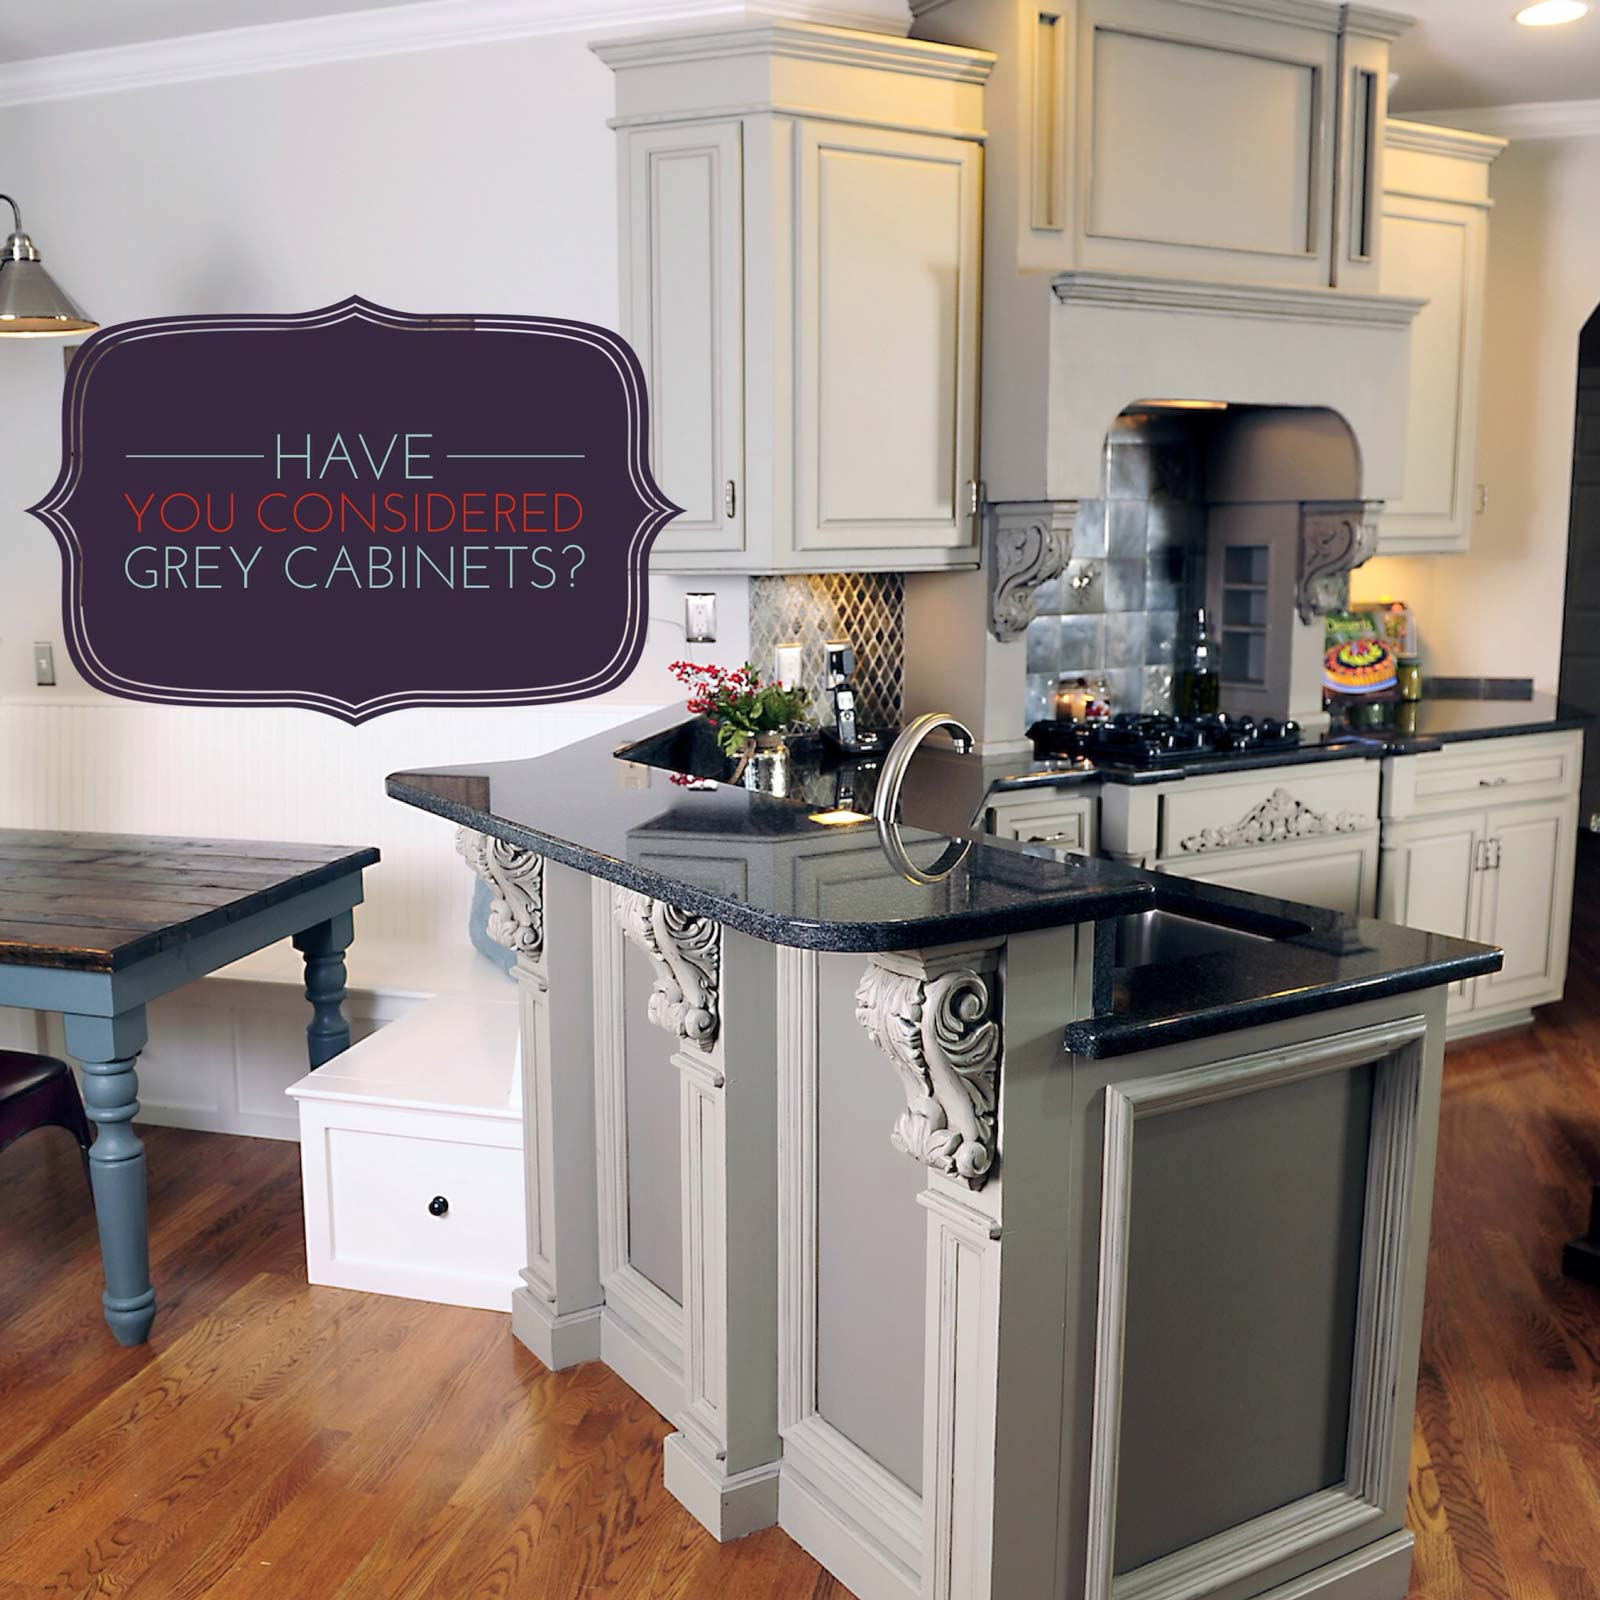 gray stained kitchen cabinets.  Have you considered Grey Kitchen Cabinets